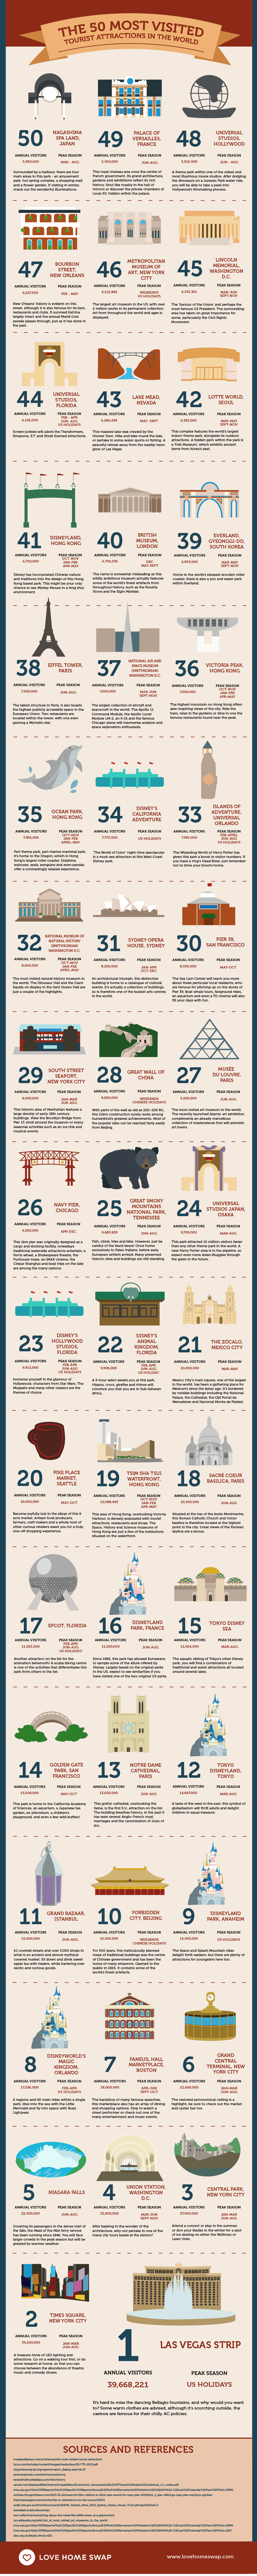 50 Most Visited Tourist Attractions in the World